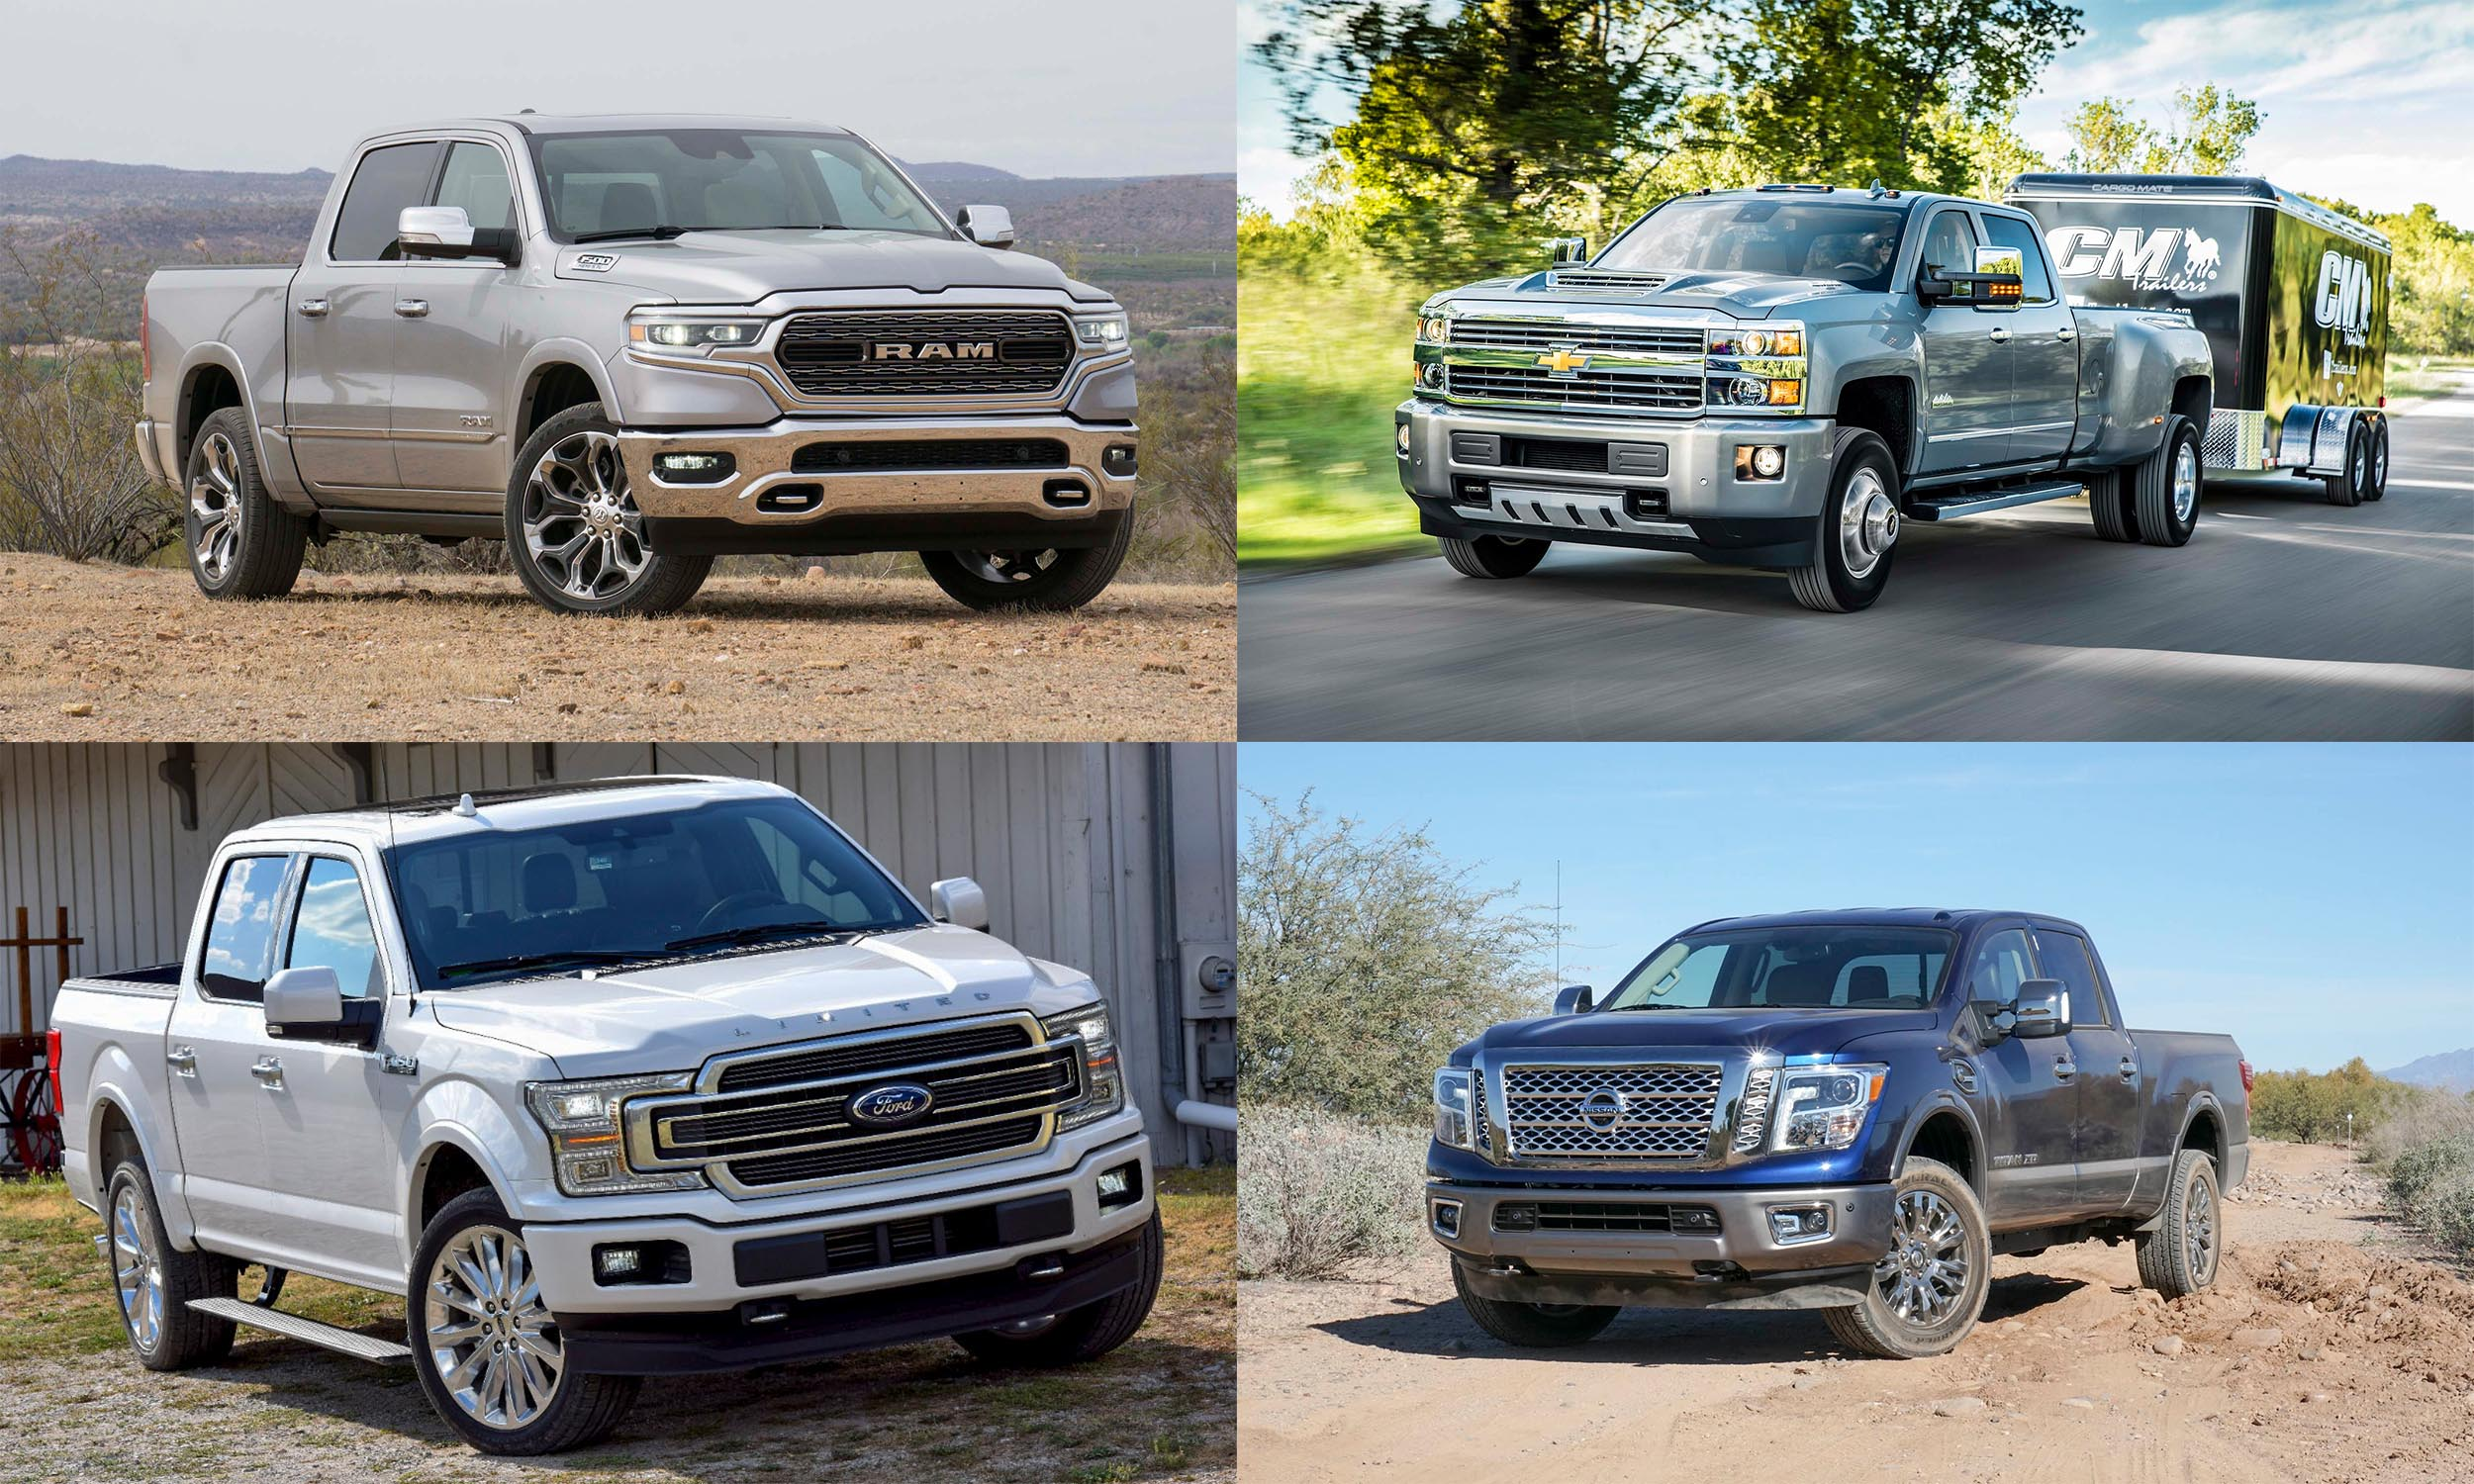 © FCA US, © Ford Motor Company, © General Motors, © Automotive Content Experience